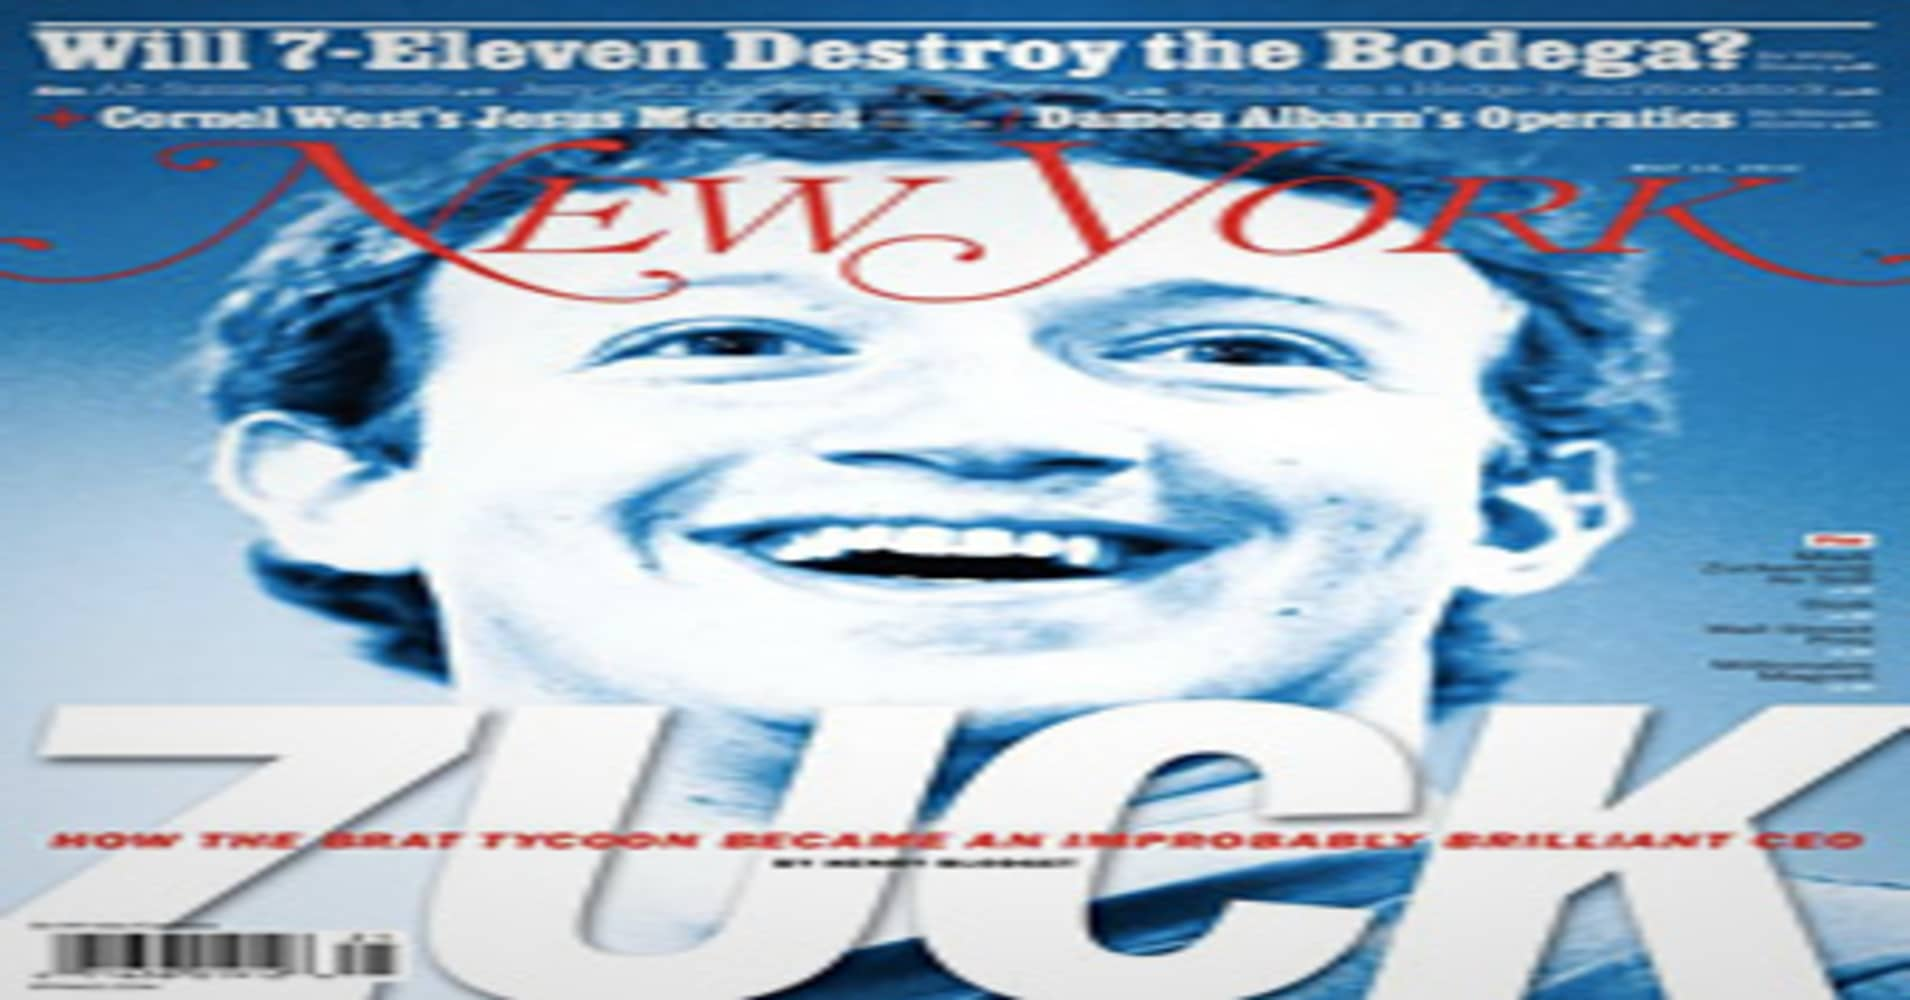 Email from owner of New York magazine says it stepped up efforts to get bigger via acquisitions